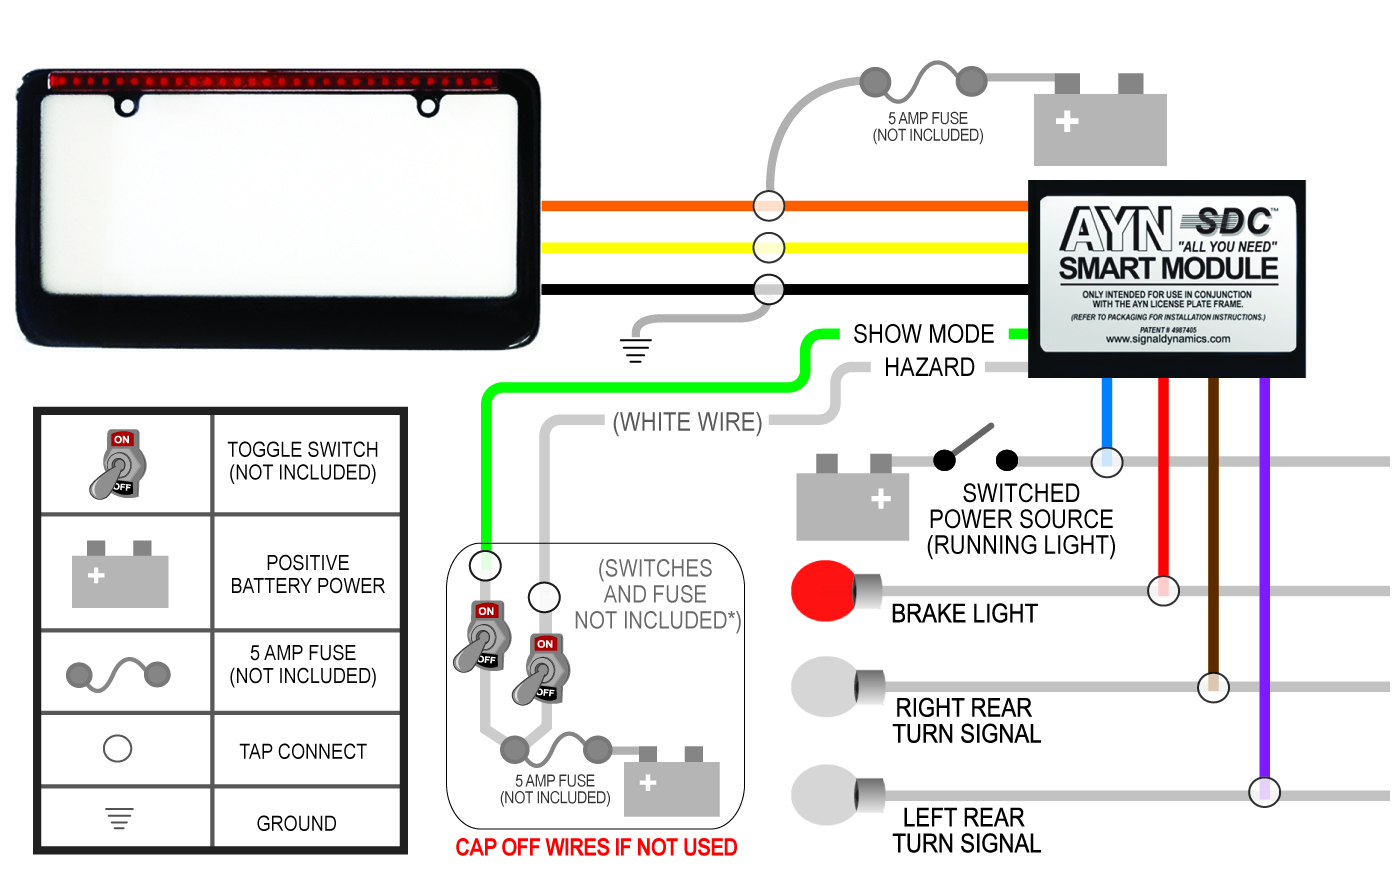 black auto wiring diagram?t=1399476781 black ayn automotive license plate frame & smart module combo Basic Turn Signal Wiring Diagram at creativeand.co